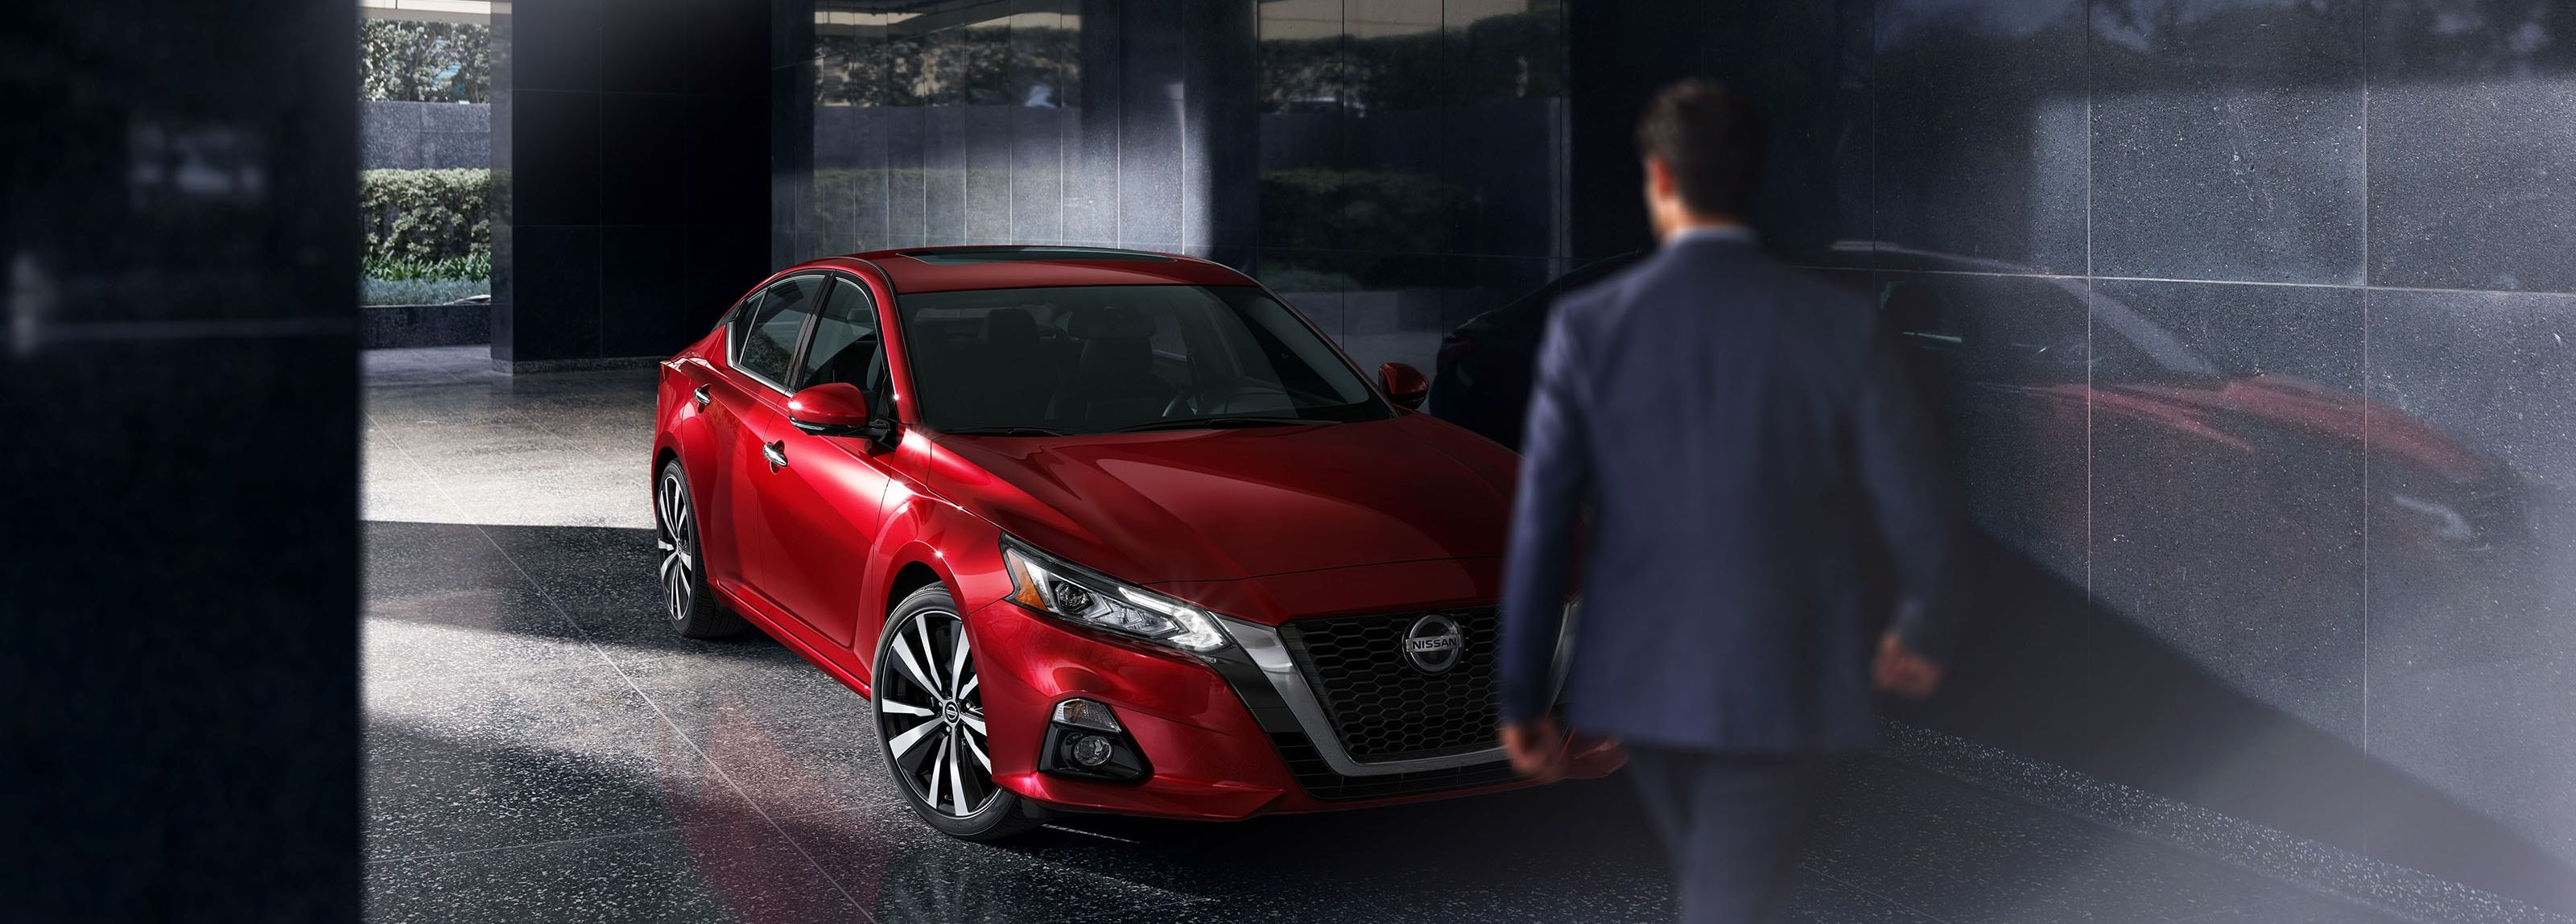 2020 Nissan Altima Leasing near Glen Allen, VA